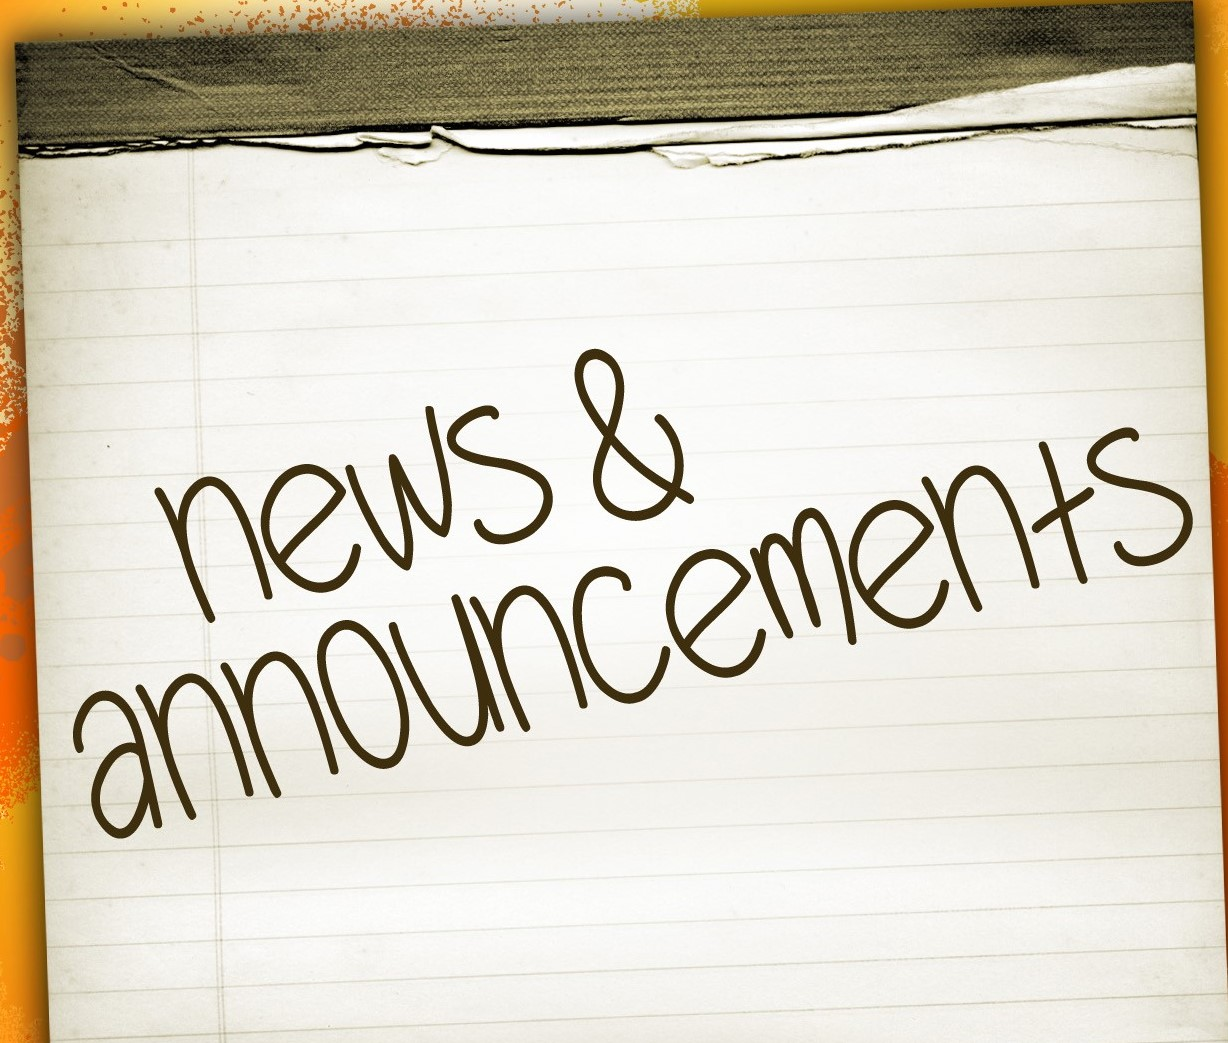 News & Announcements